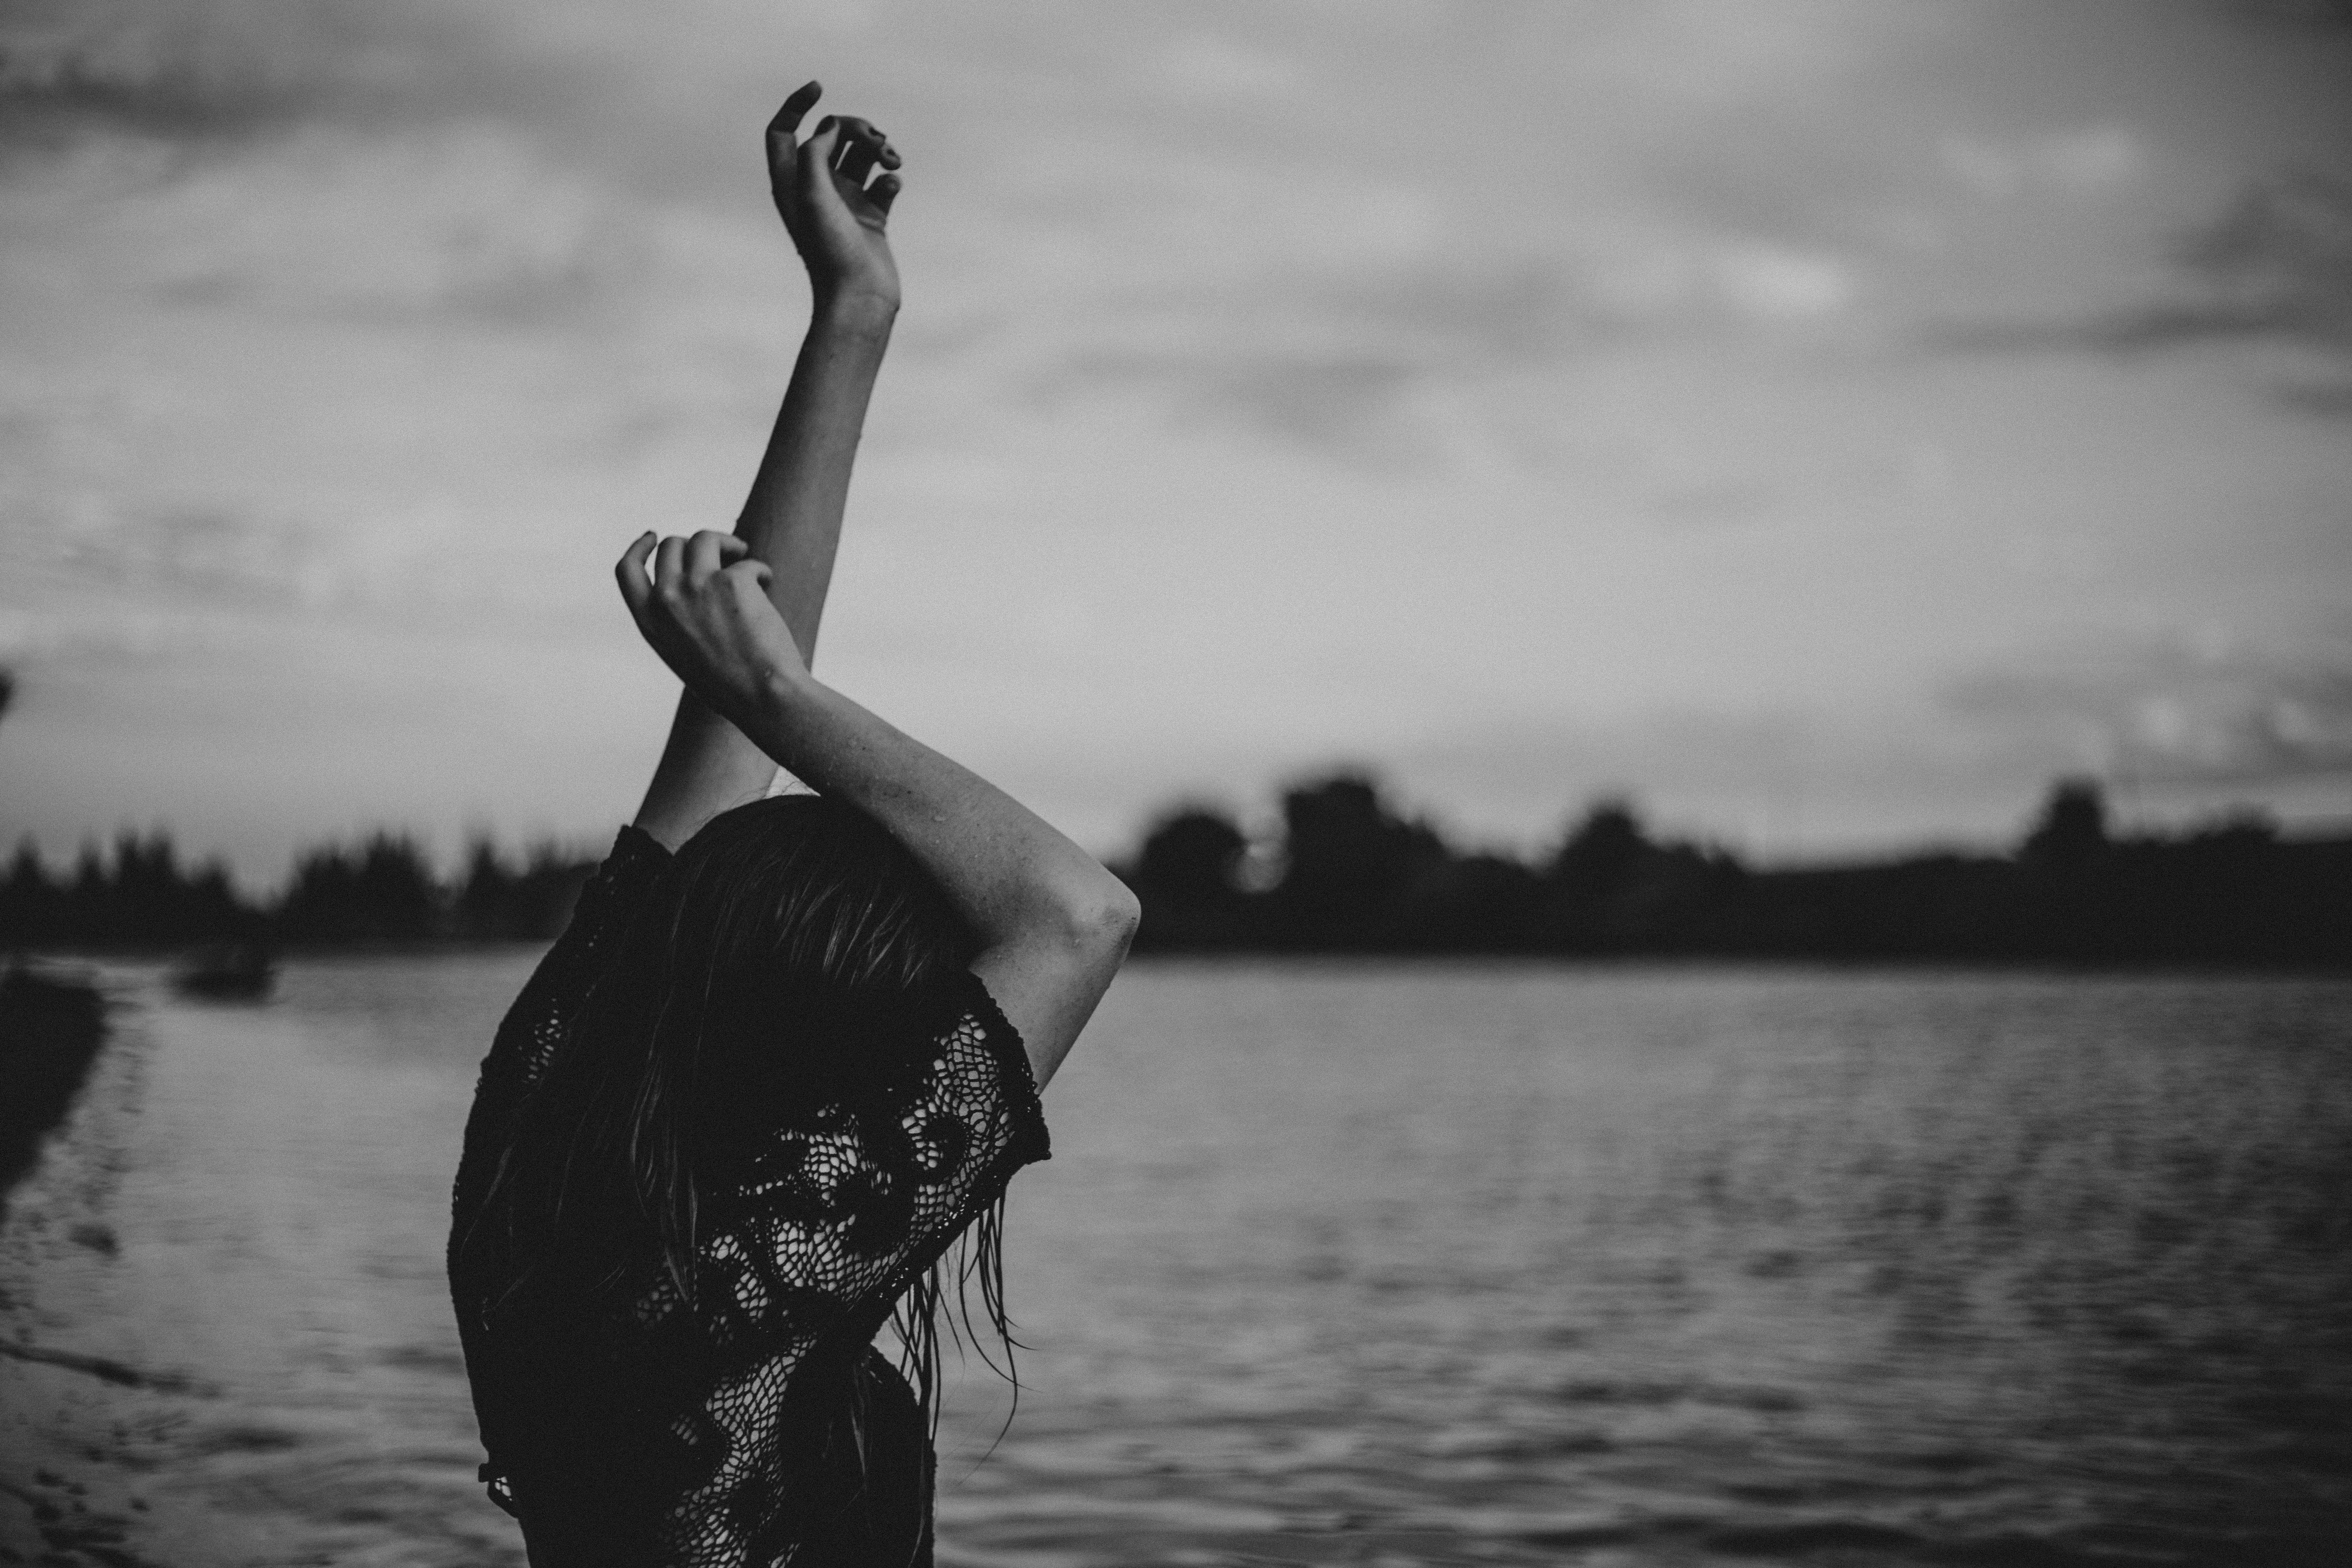 grayscale photo of woman stretching body front of body of water